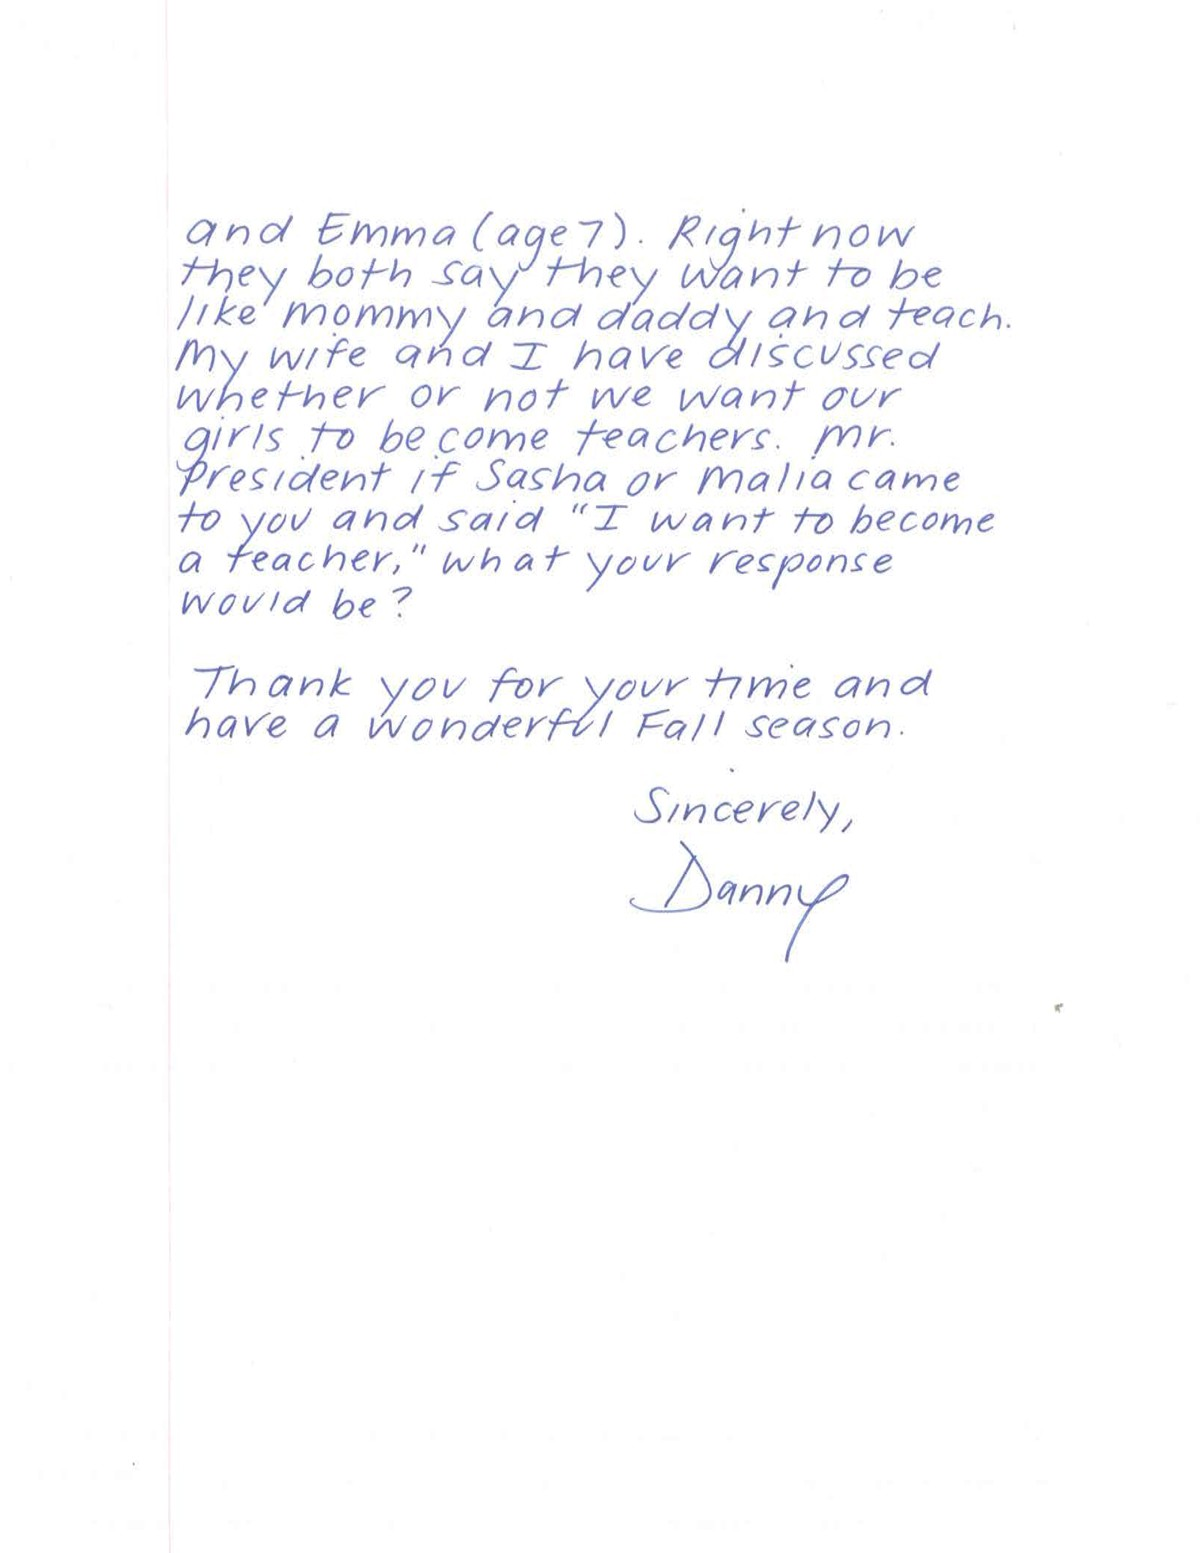 read dannys letter then watch what president obama had to say